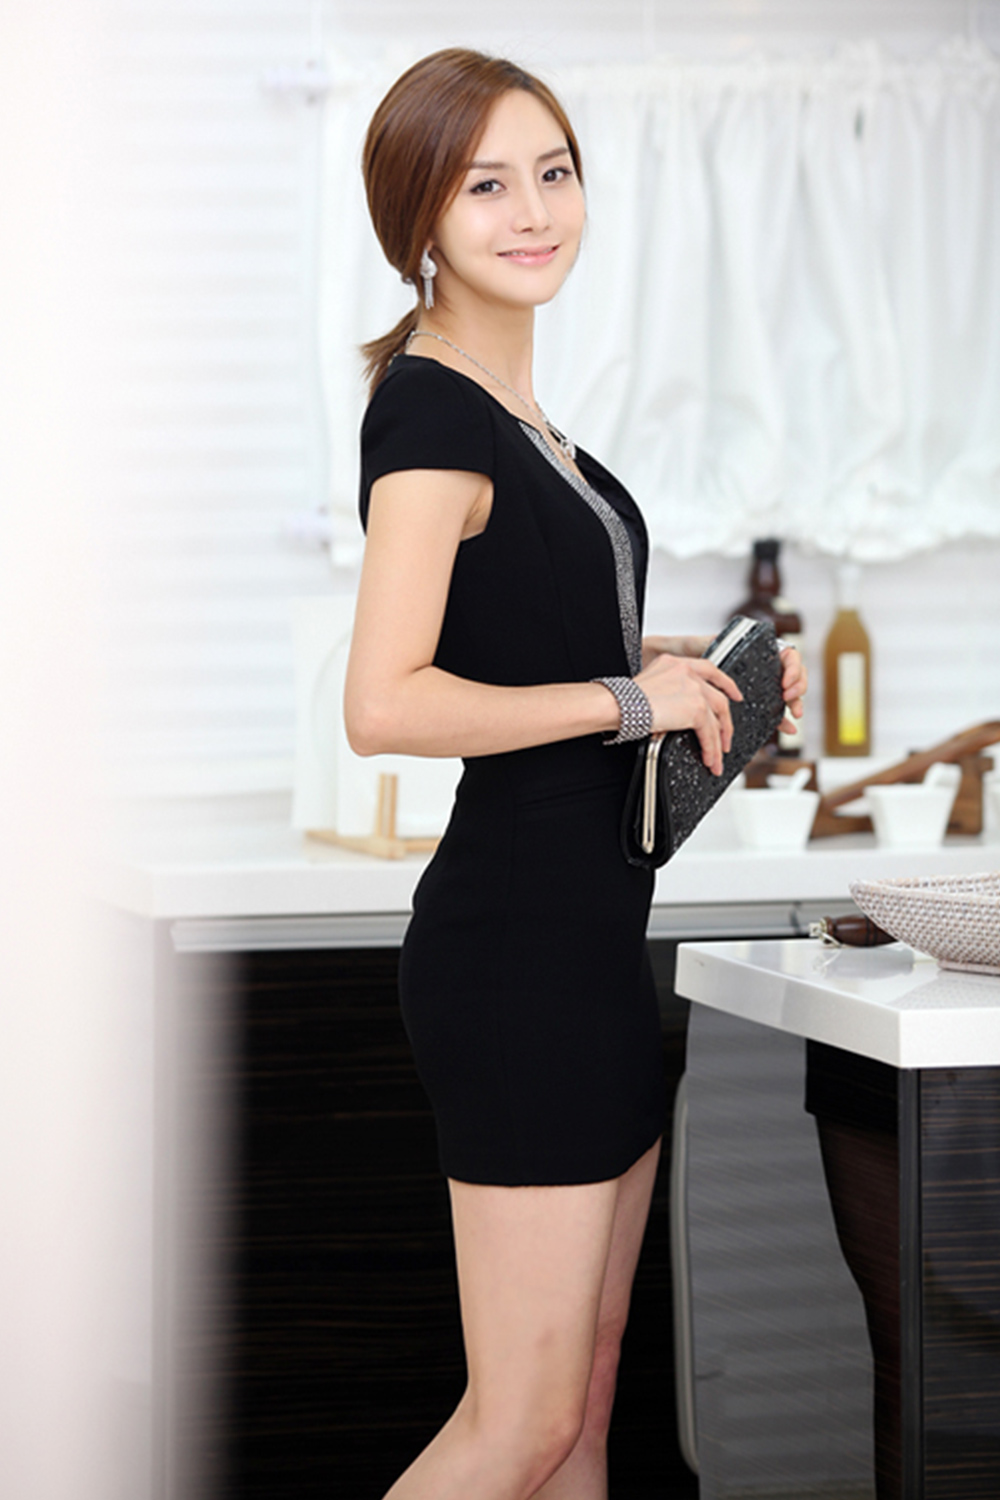 Unomatch Women Sexy Short Body Fit Big V Neck Bodycon Dress Black Unomatch Shop Conceptual fat overweight obese female dress outfit vs slim fit healthy body after weight loss or diet thin young woman isolated. unomatch women sexy short body fit big v neck bodycon dress black